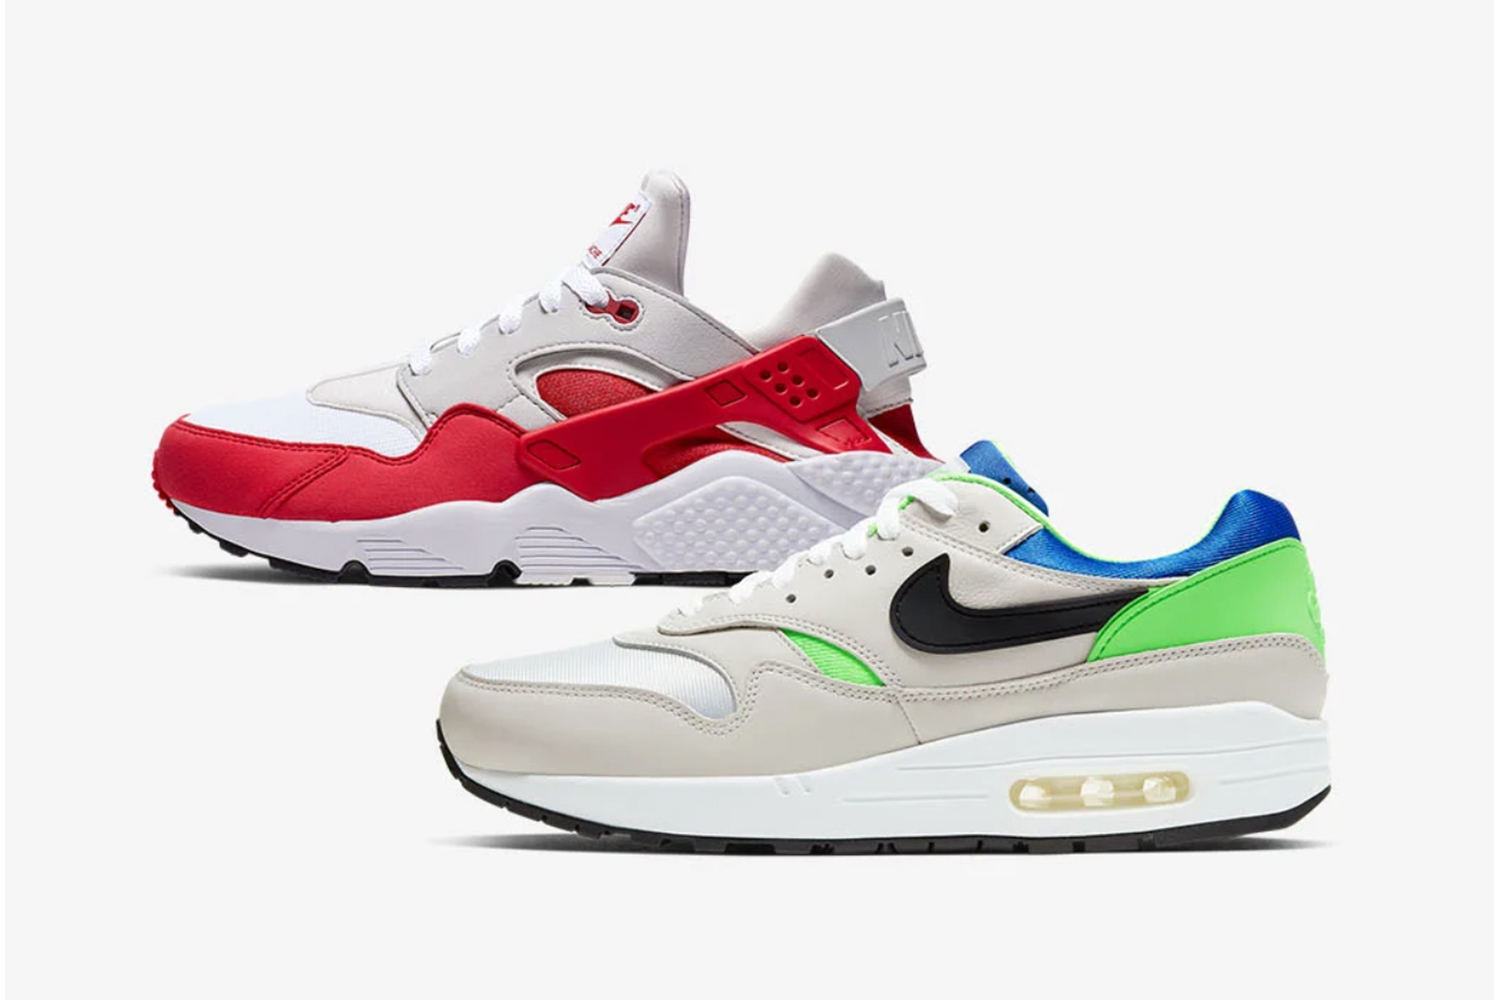 Two of Nike's Most Iconic Shoes, Now in Reversed Original Colorways